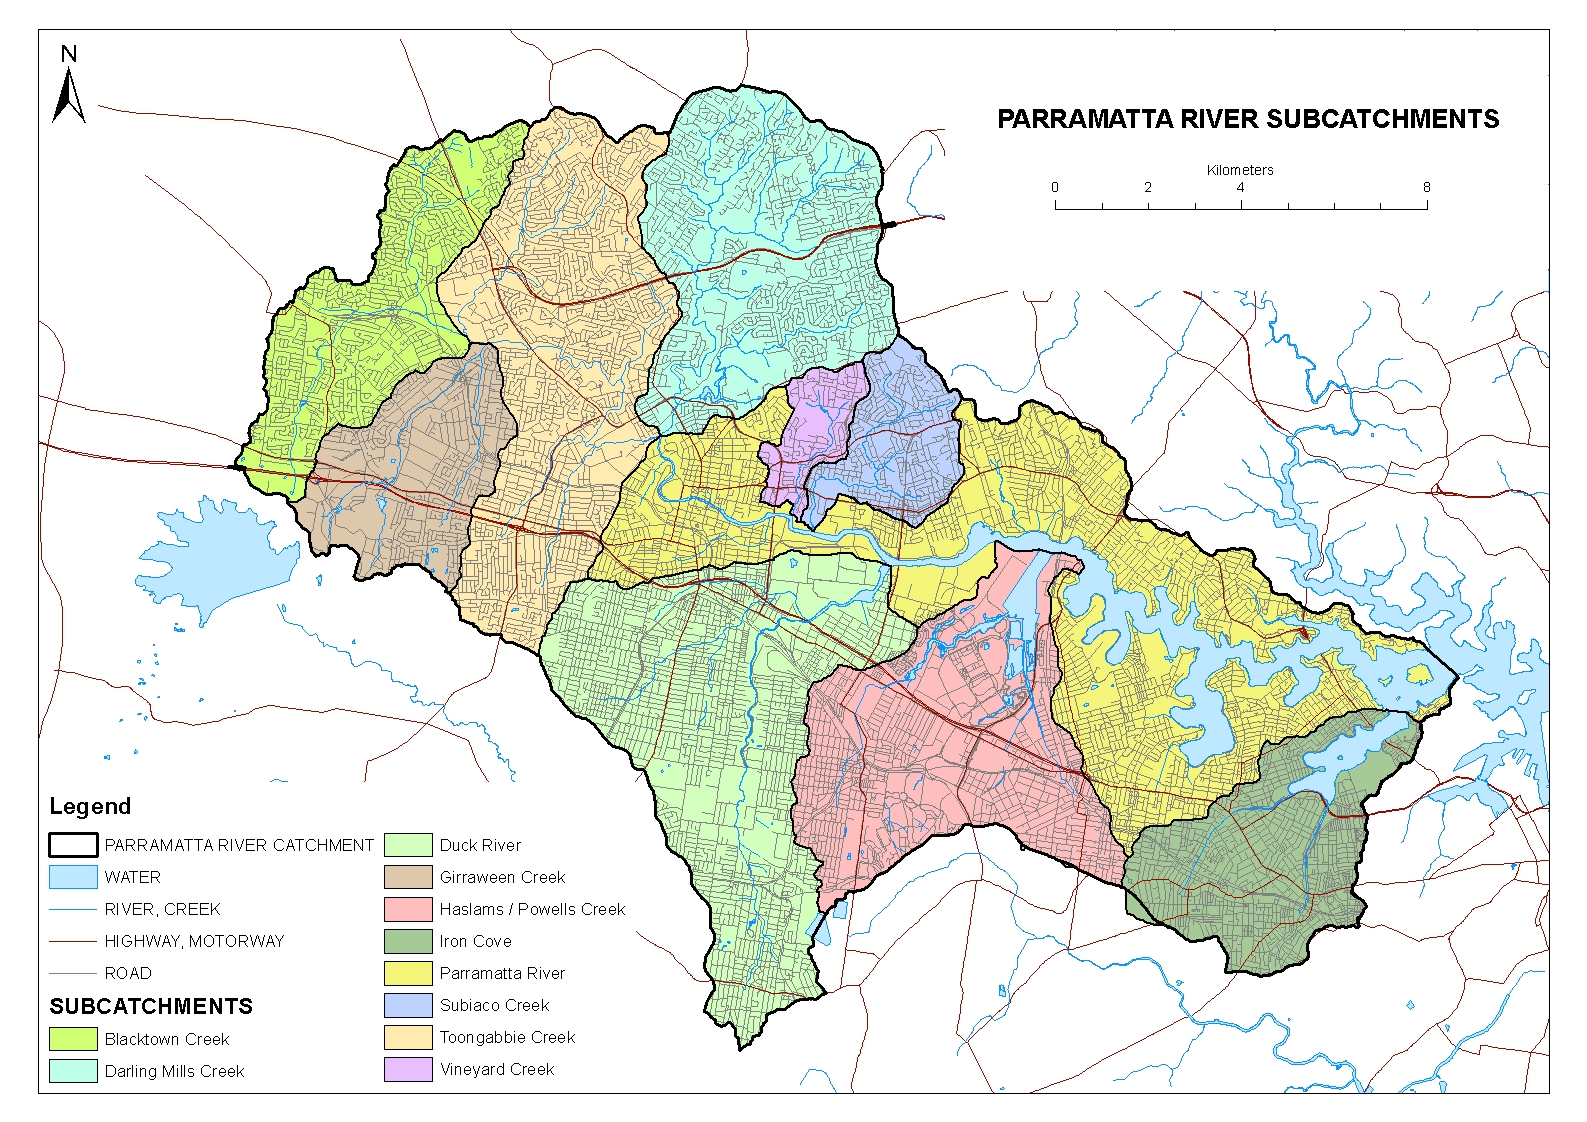 Parramatta River Catchment Group Maps